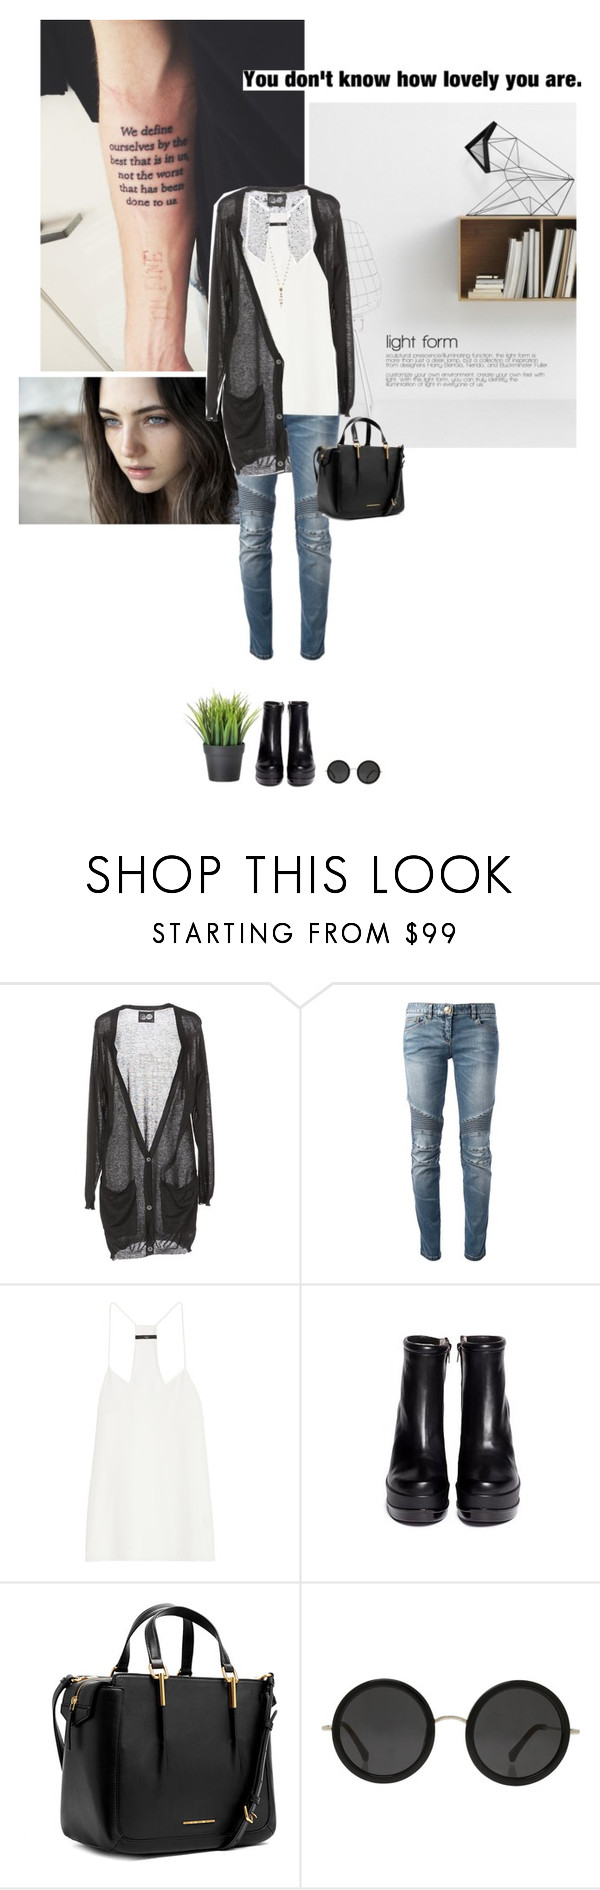 """""""""""Be soft. Do not let the world make you hard. Do not let pain make you hate. Do not let the bitterness steal your sweetness."""" -Kurt Vonnegut"""" by are-you-with-me ❤ liked on Polyvore featuring Cheap Monday, Balmain, TIBI, Robert Clergerie, Marc by Marc Jacobs, The Row and Links of London"""